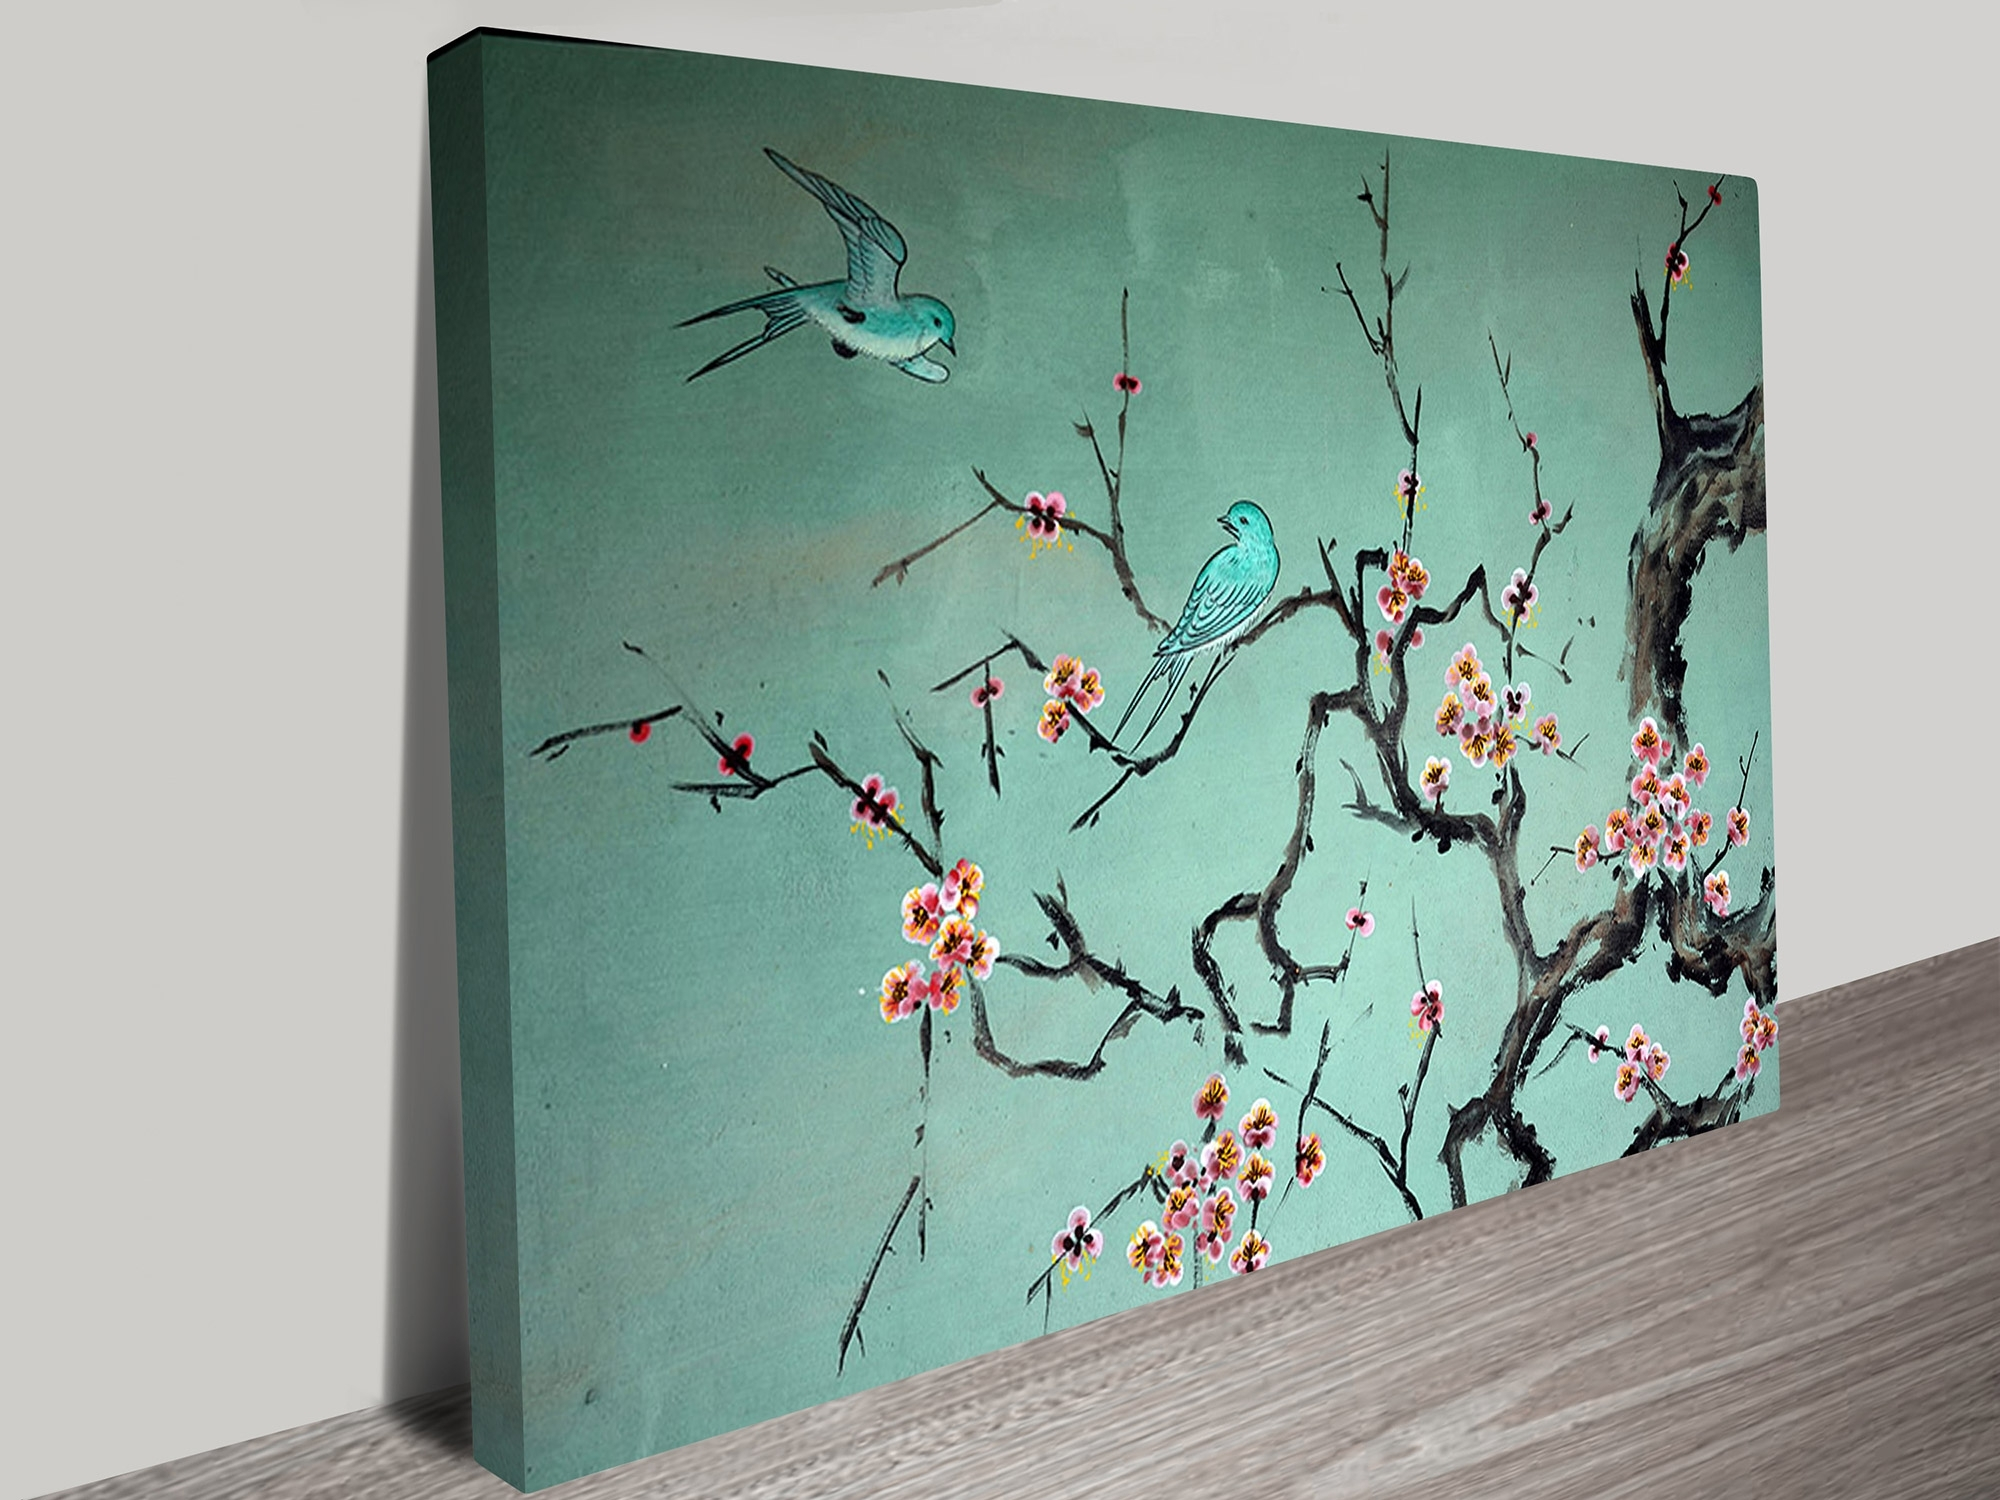 Preferred Traditional Wall Art In Korean Traditional Art Of Birds And A Tree Branch (View 5 of 15)